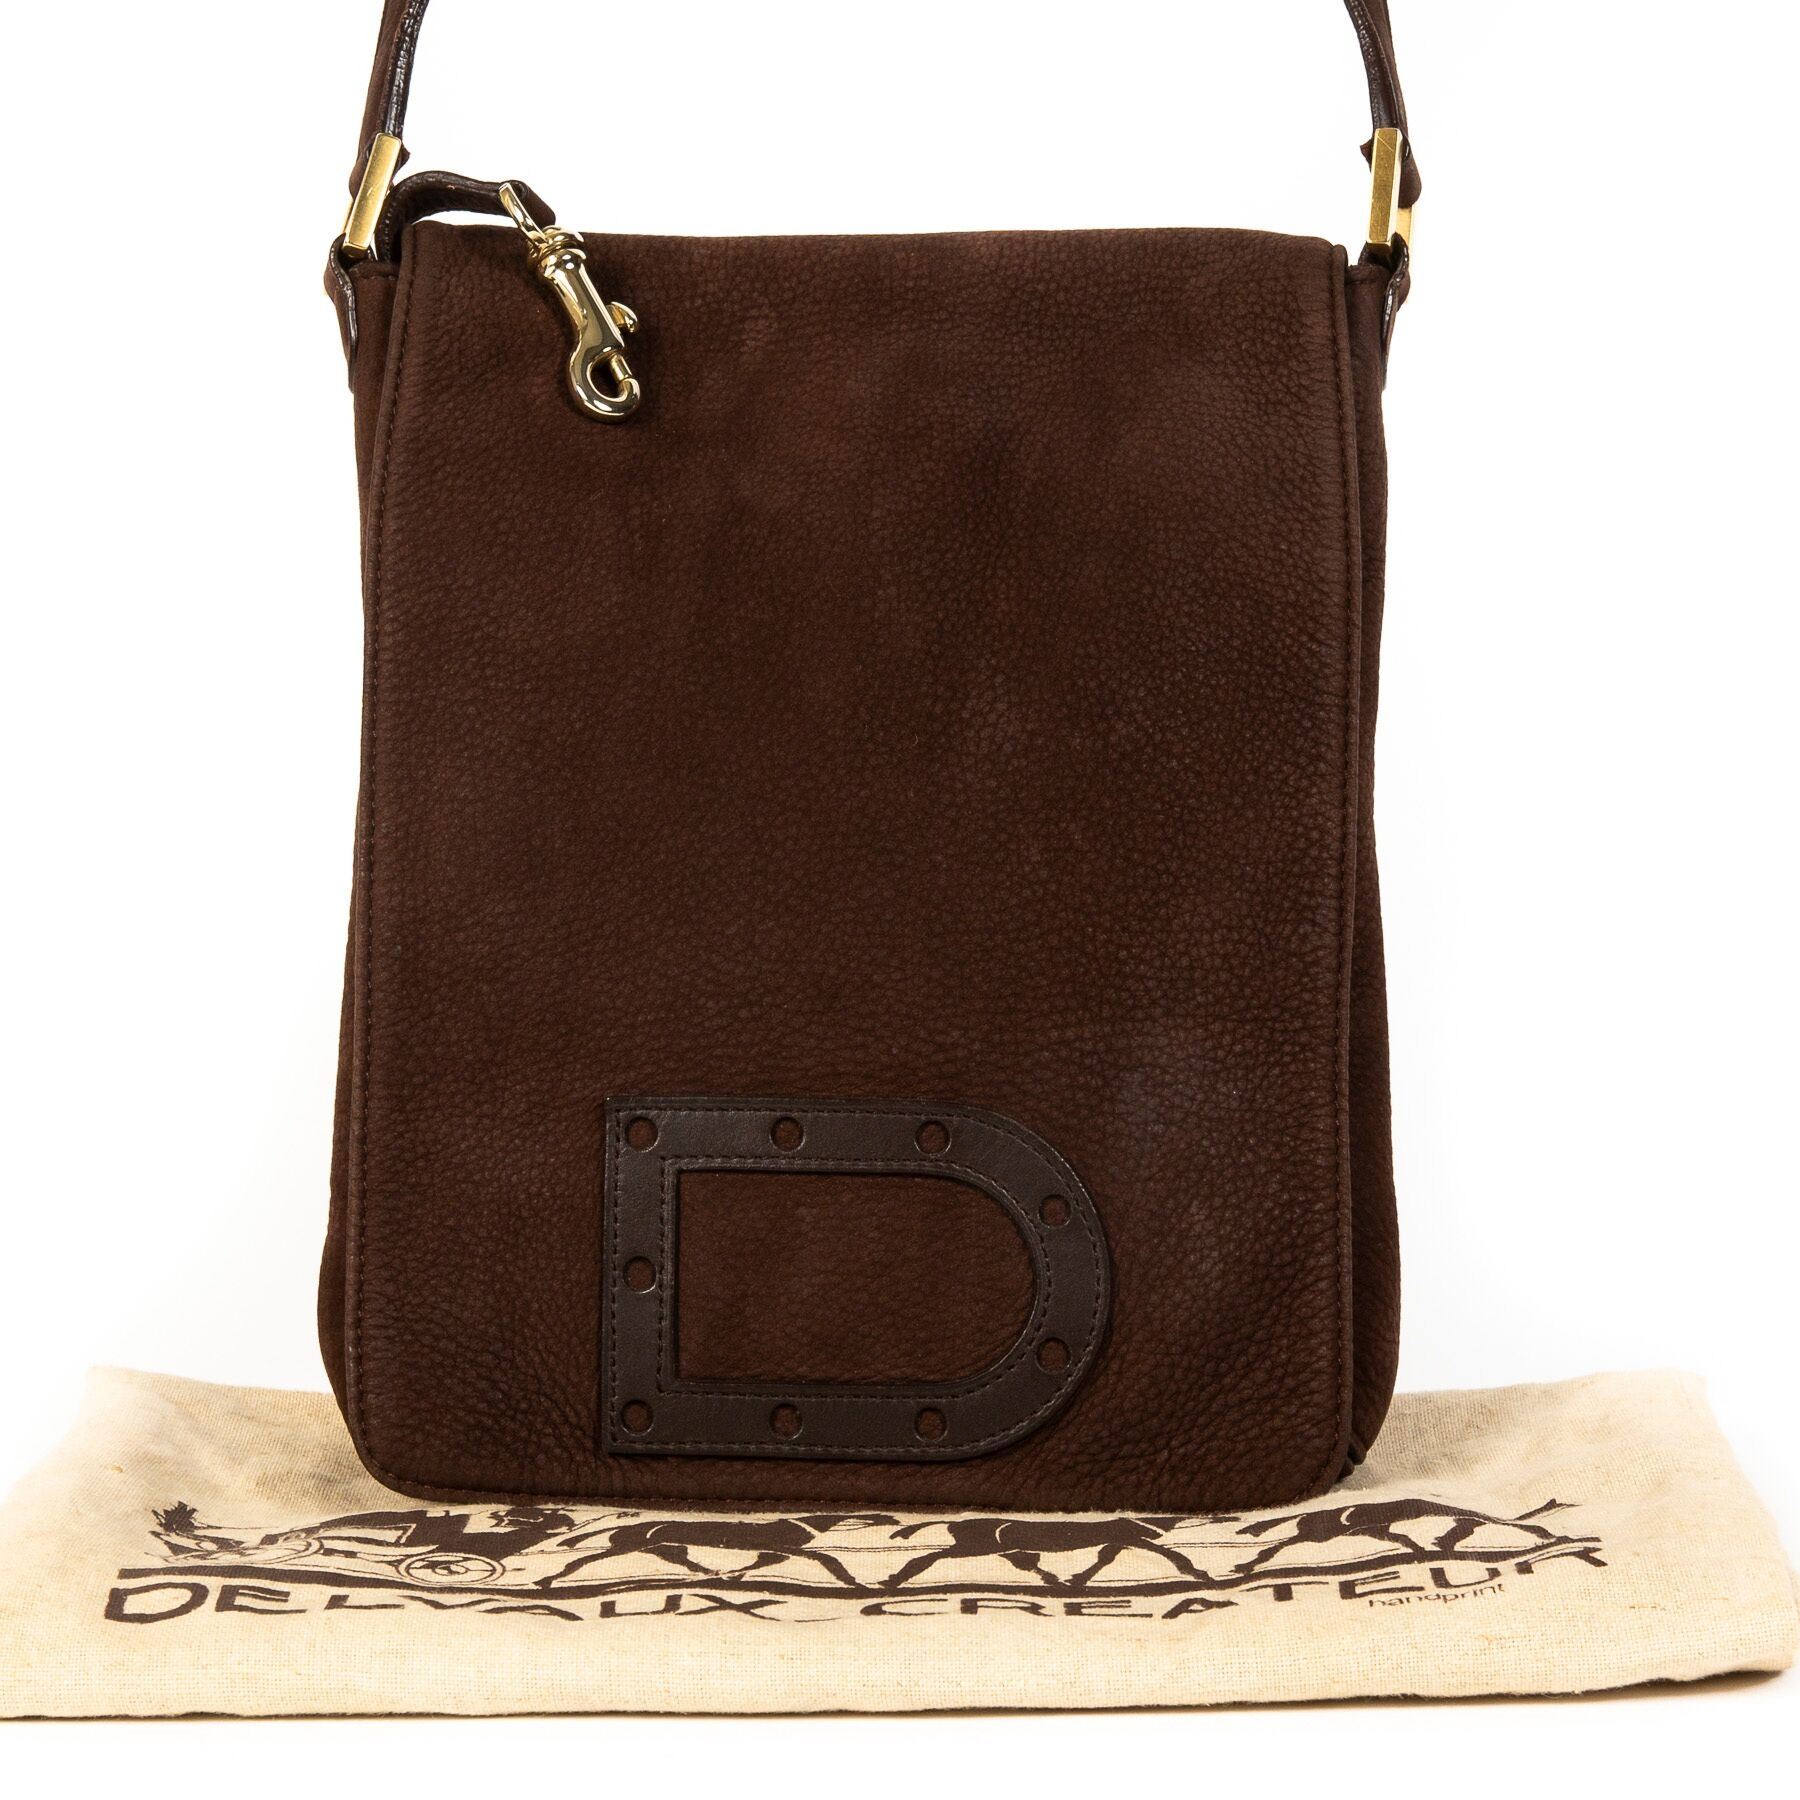 uy authentic secondhand Delvaux Nubuck Baudrier Louise bag at LabelLOV webshop, safe payment.